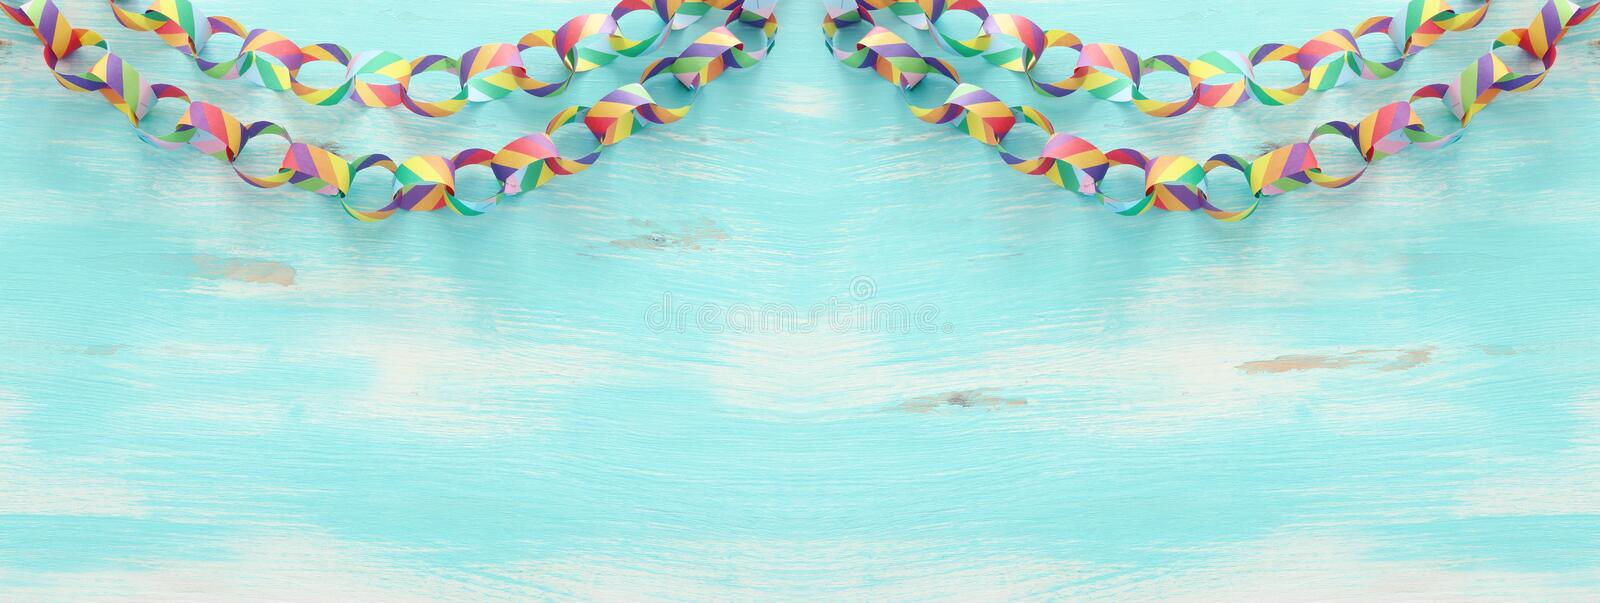 Paper colorful chain garland over white wooden background. Traditional jewish sukkot holiday decoration royalty free stock photo